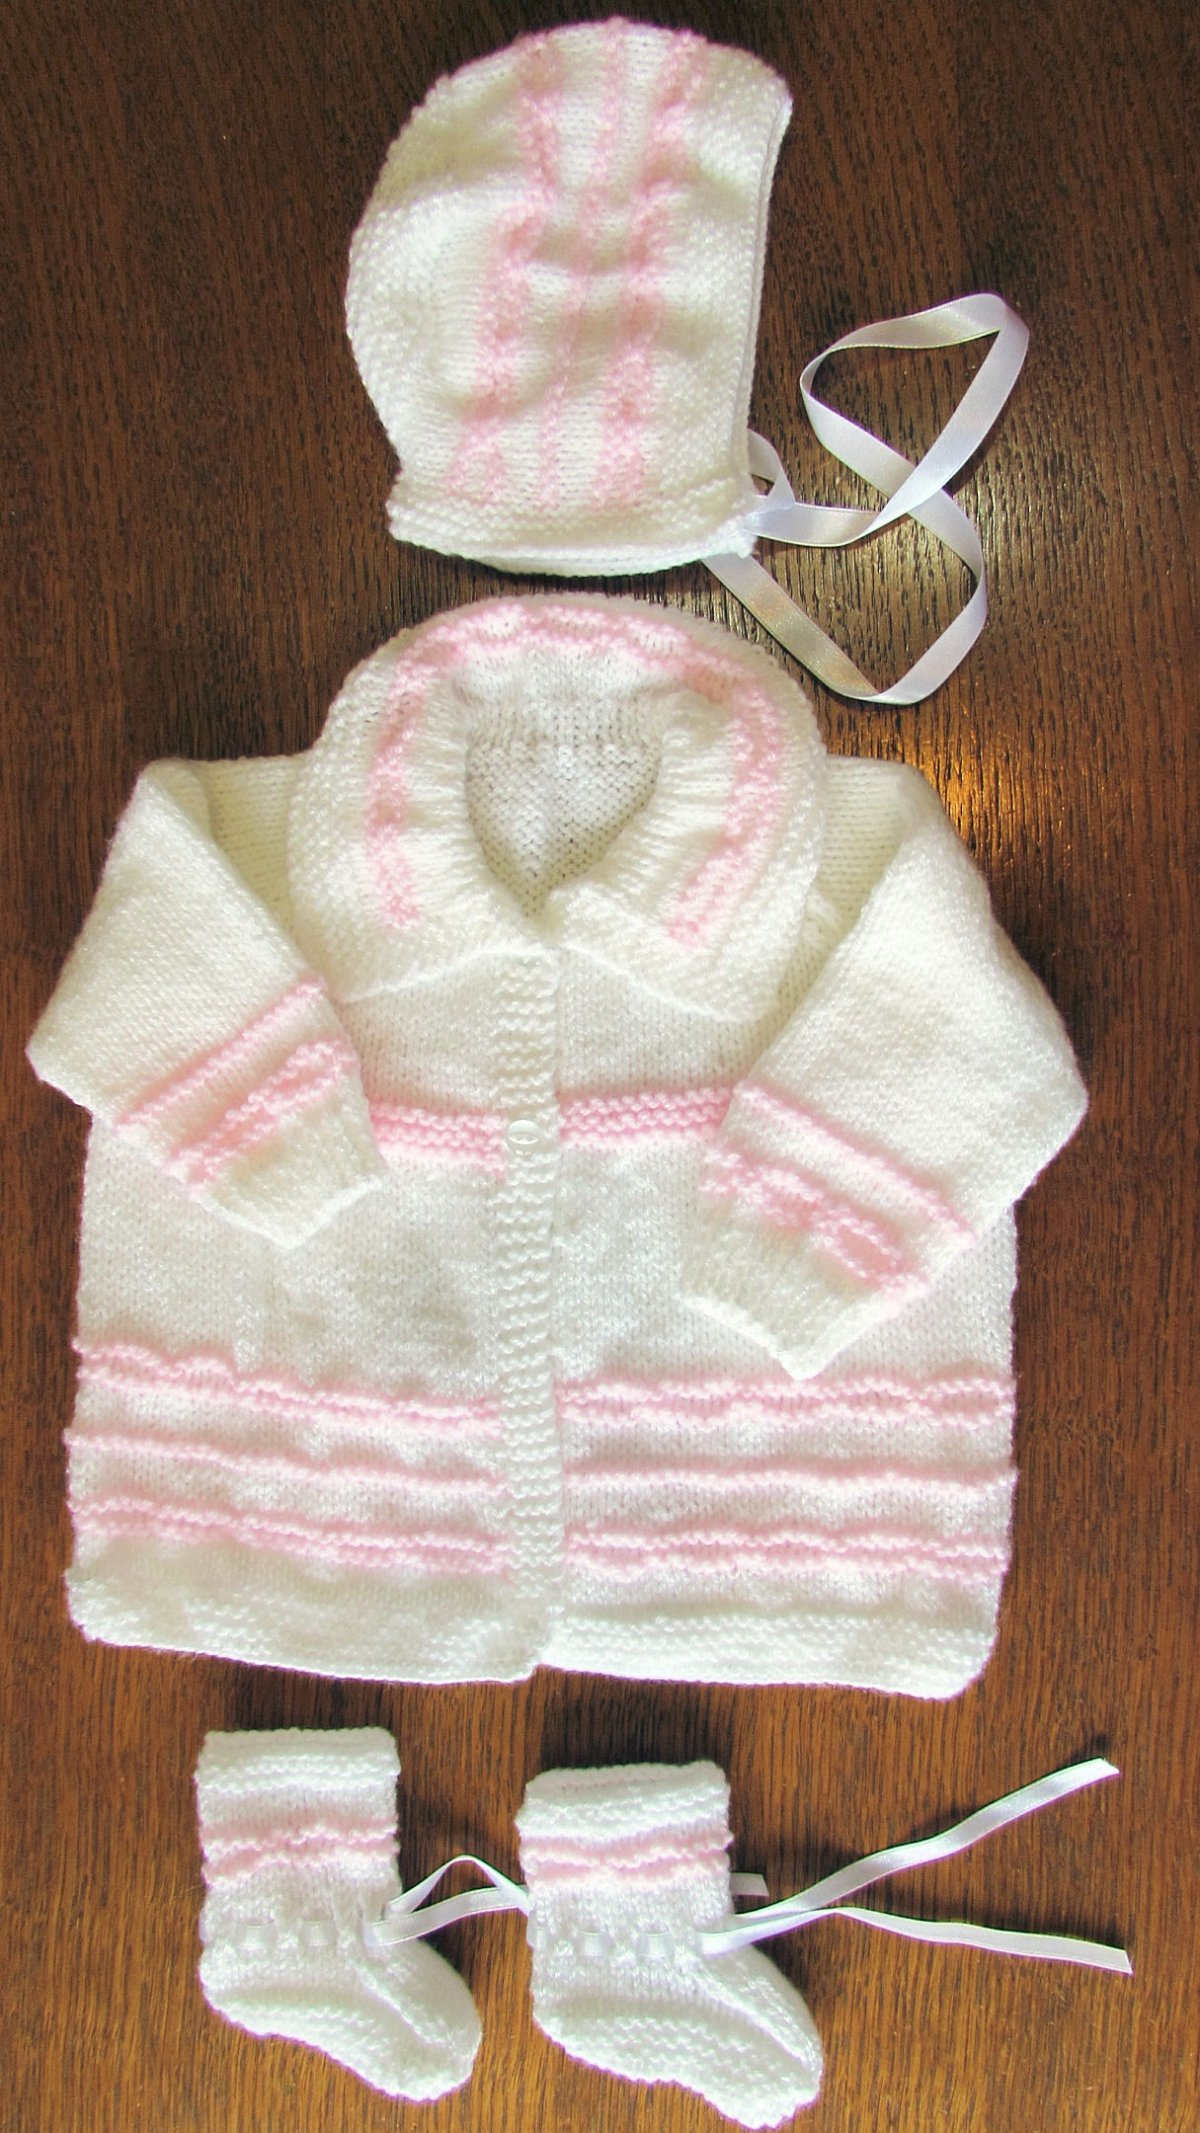 2616a901b48f white and pink matinee set new 0 to 3 months hand knitted coat hat ...